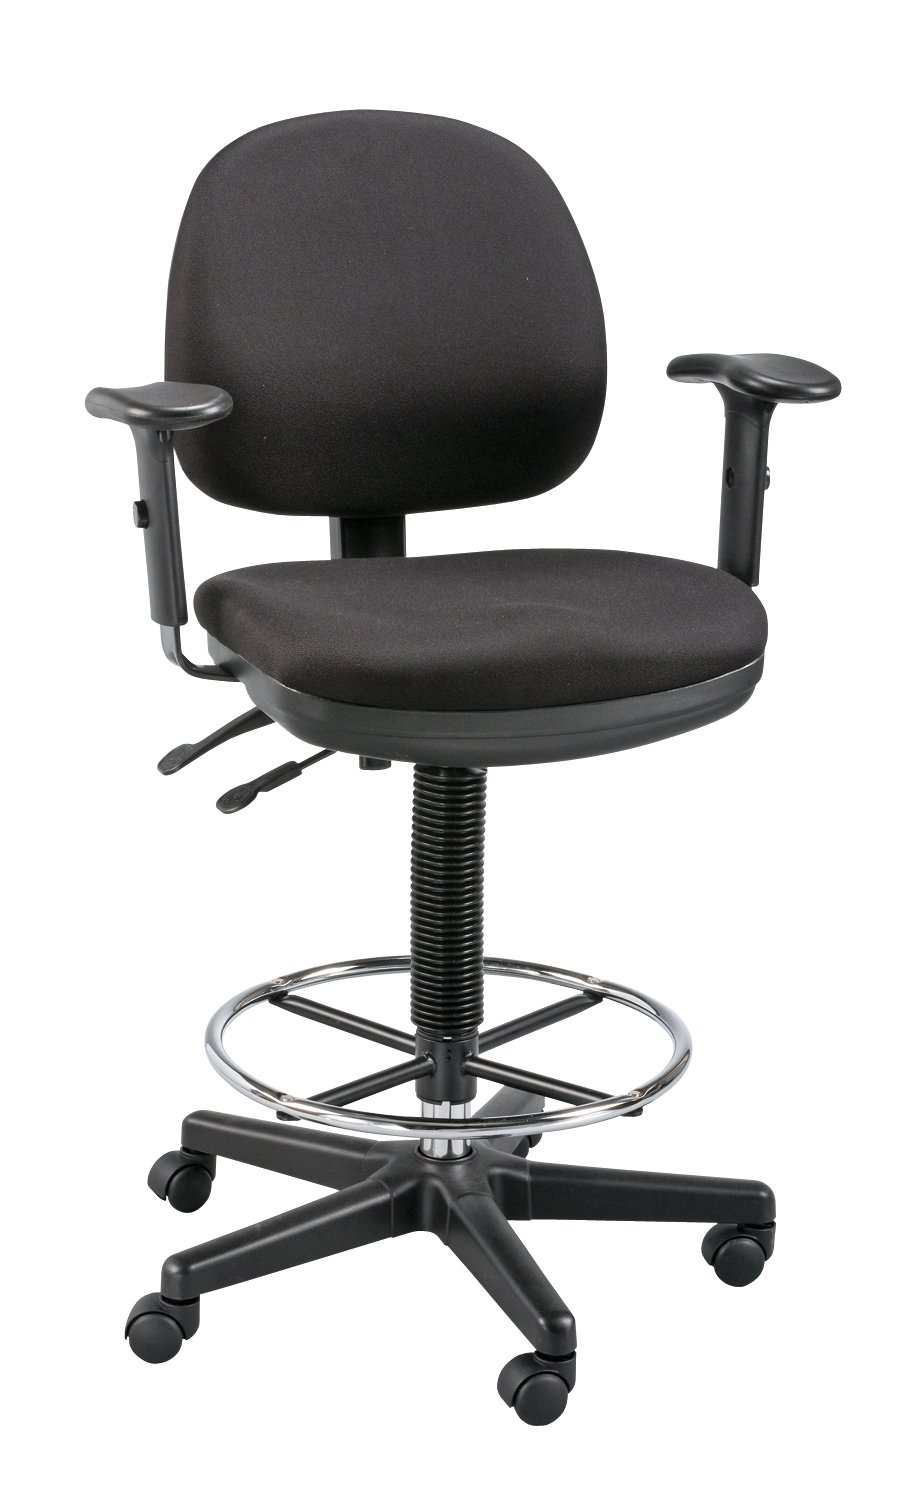 Alvin DC577-40 Zenith Drafting Chair by Alvin